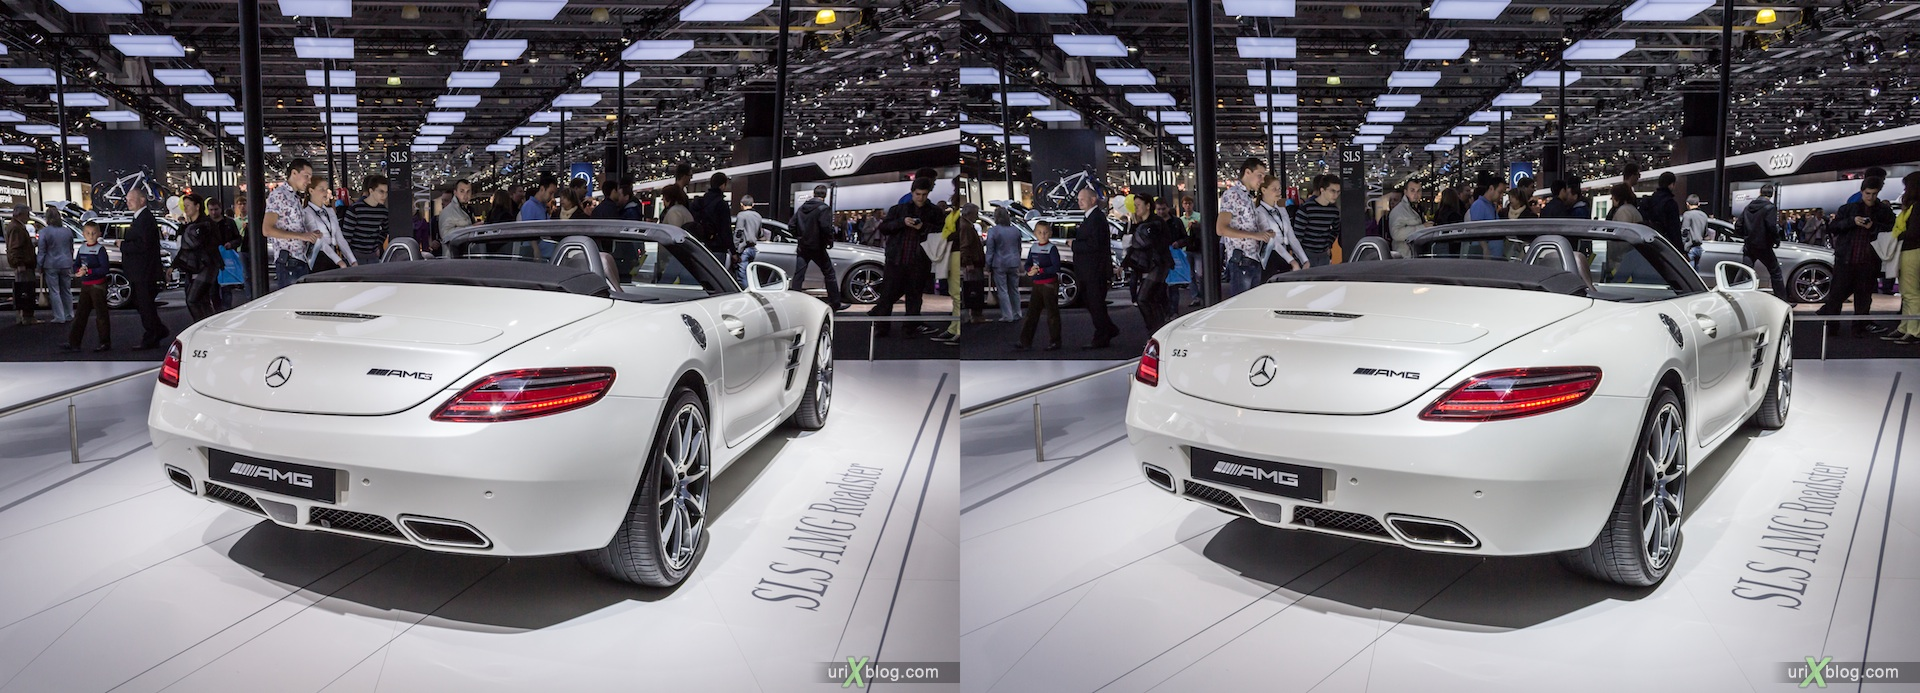 2012, Mercedes Benz AMG, Moscow International Automobile Salon, auto show, 3D, stereo pair, cross-eyed, crossview